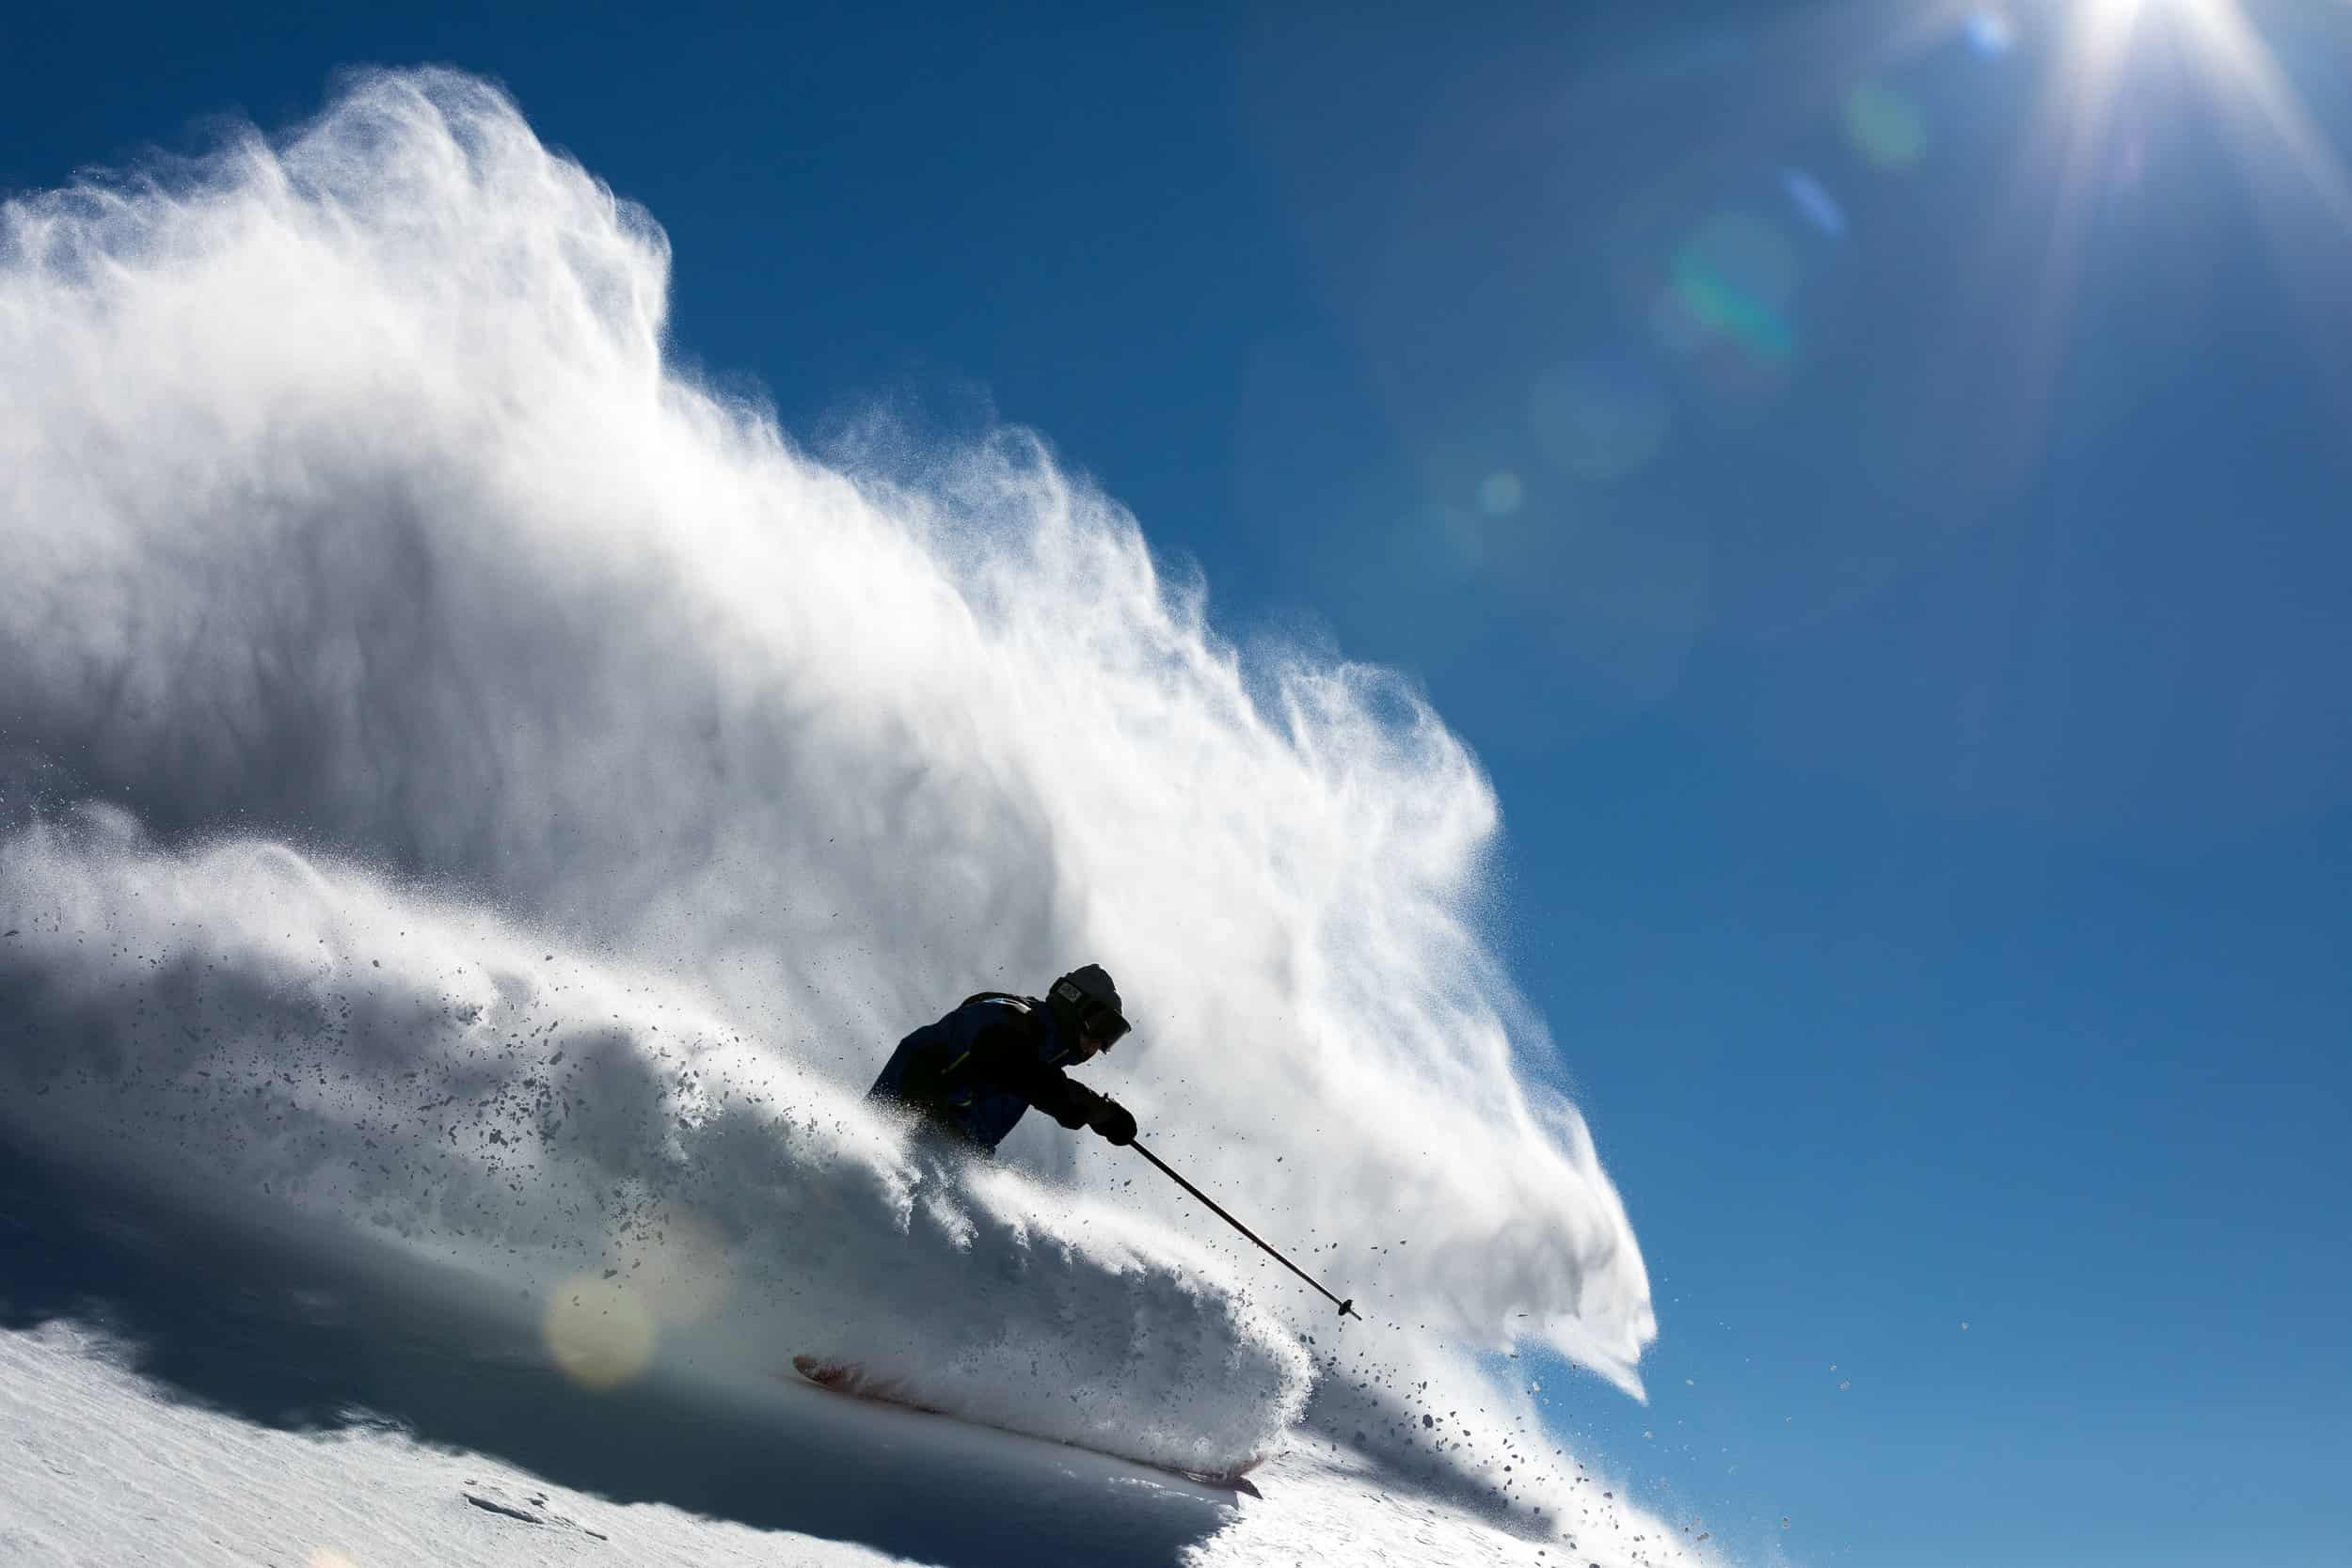 Thomas Waddell kicking up some cold smoke at Thredbo. One of our favourite images from earlier on in the season, taken during the first week of July. Image:: Aedan O'Donnell/Thredbo Resort